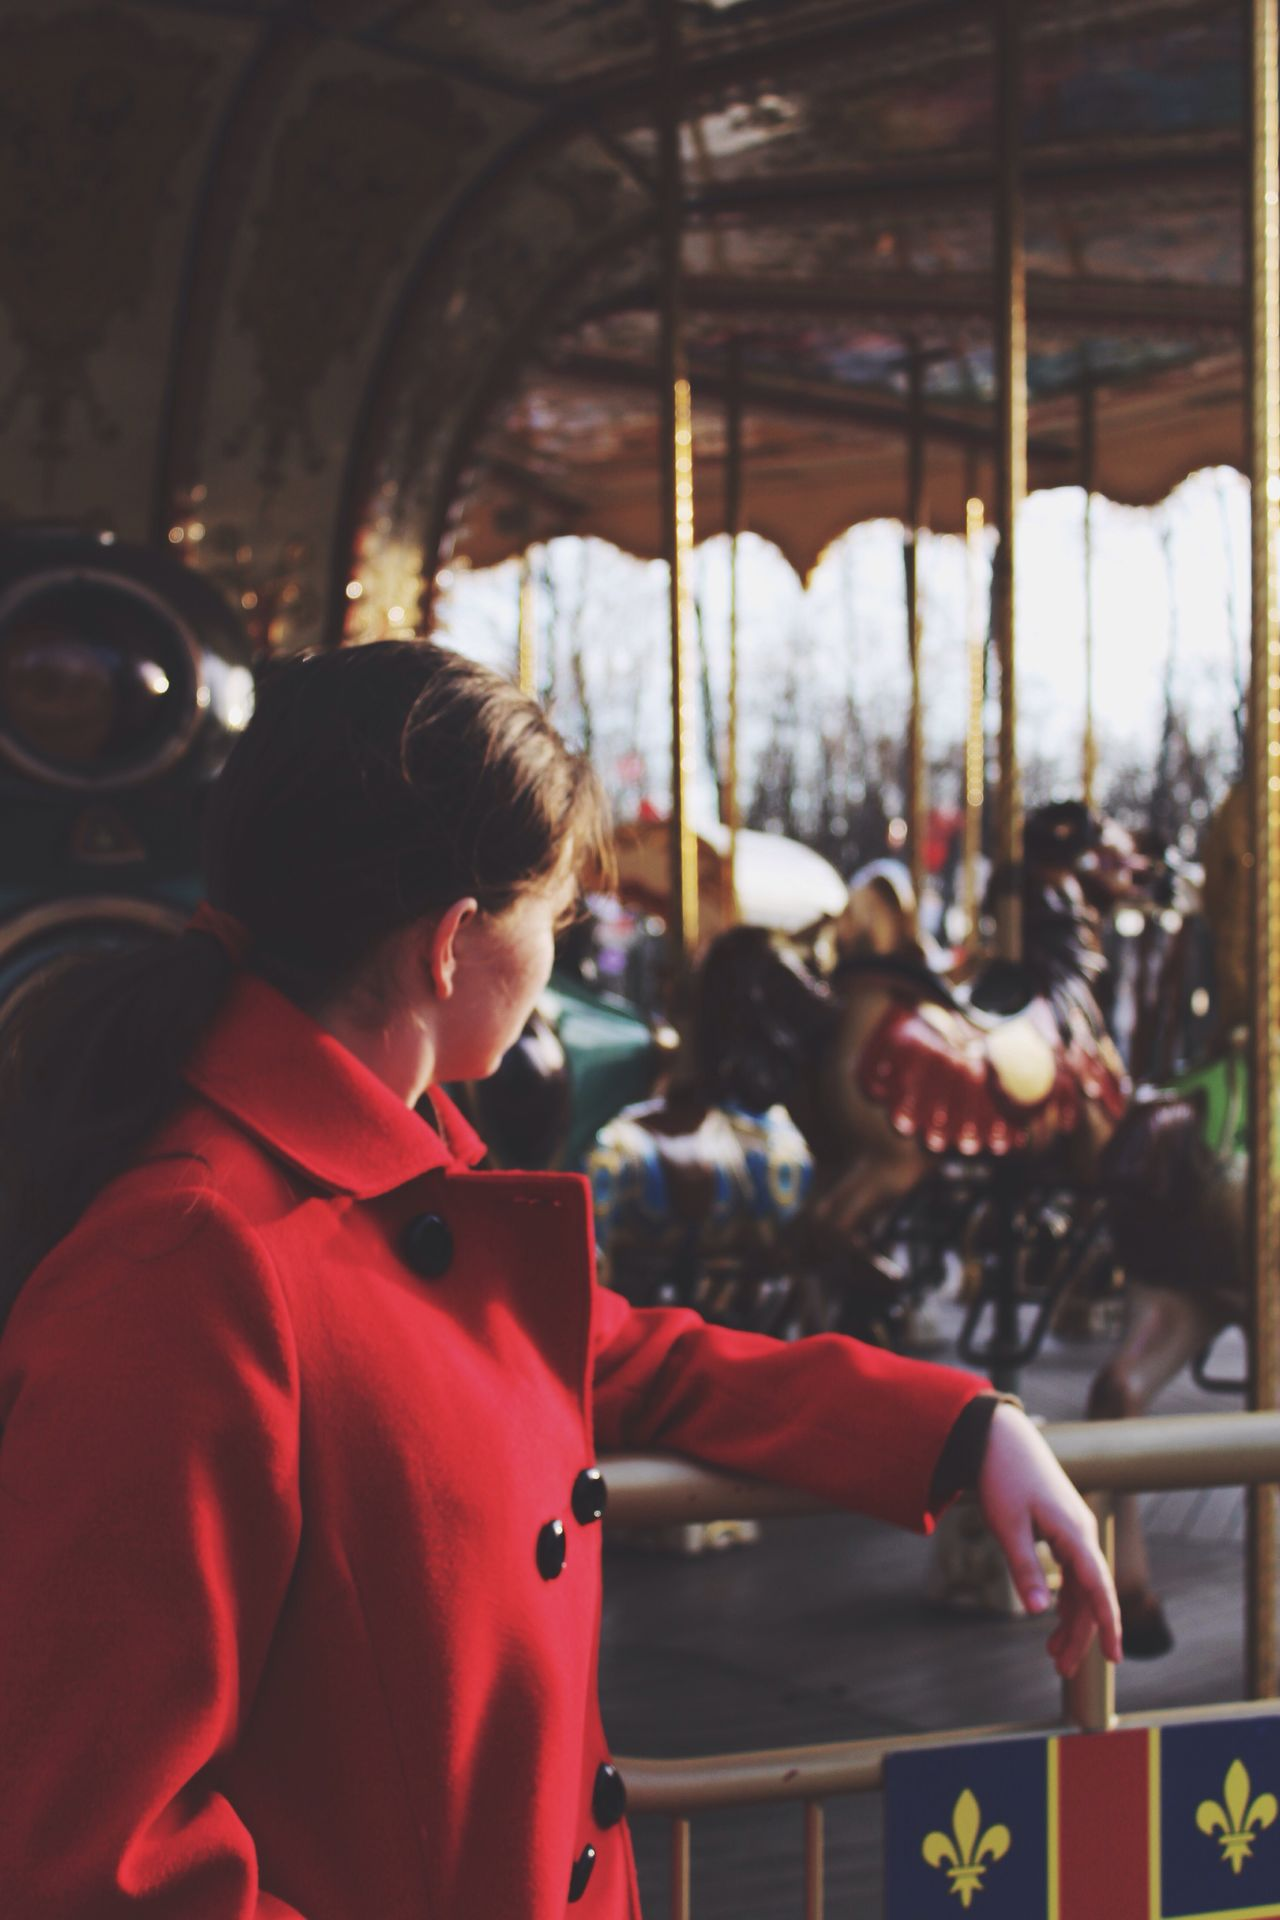 Real People Lifestyles One Person Leisure Activity Amusement Park Carousel Amusement Park Ride Childhood Day Outdoors Young Adult